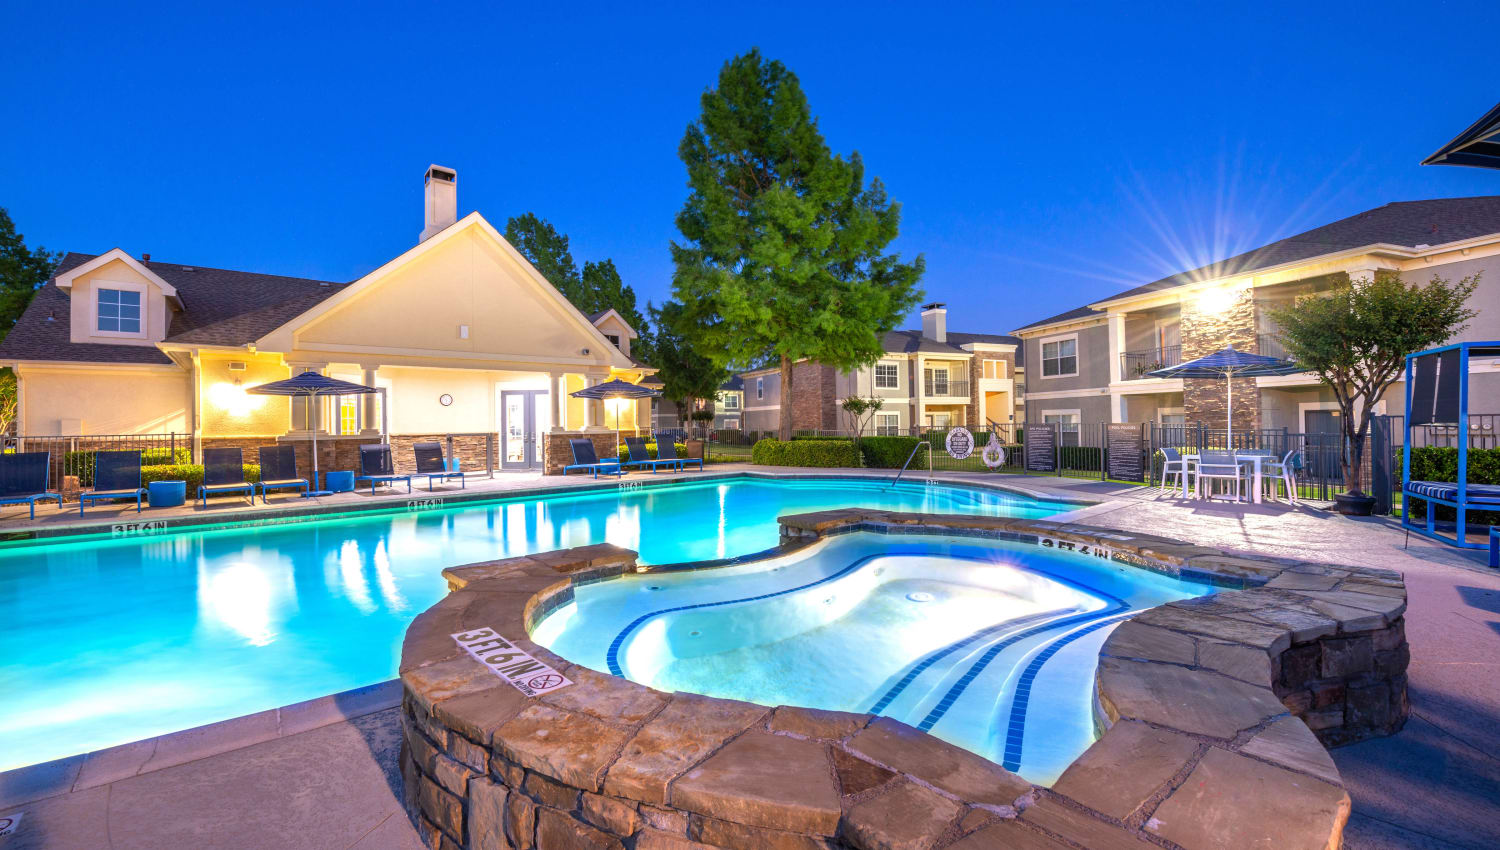 Twilight at the spa looking over the swimming pool at Olympus Stone Glen in Keller, Texas